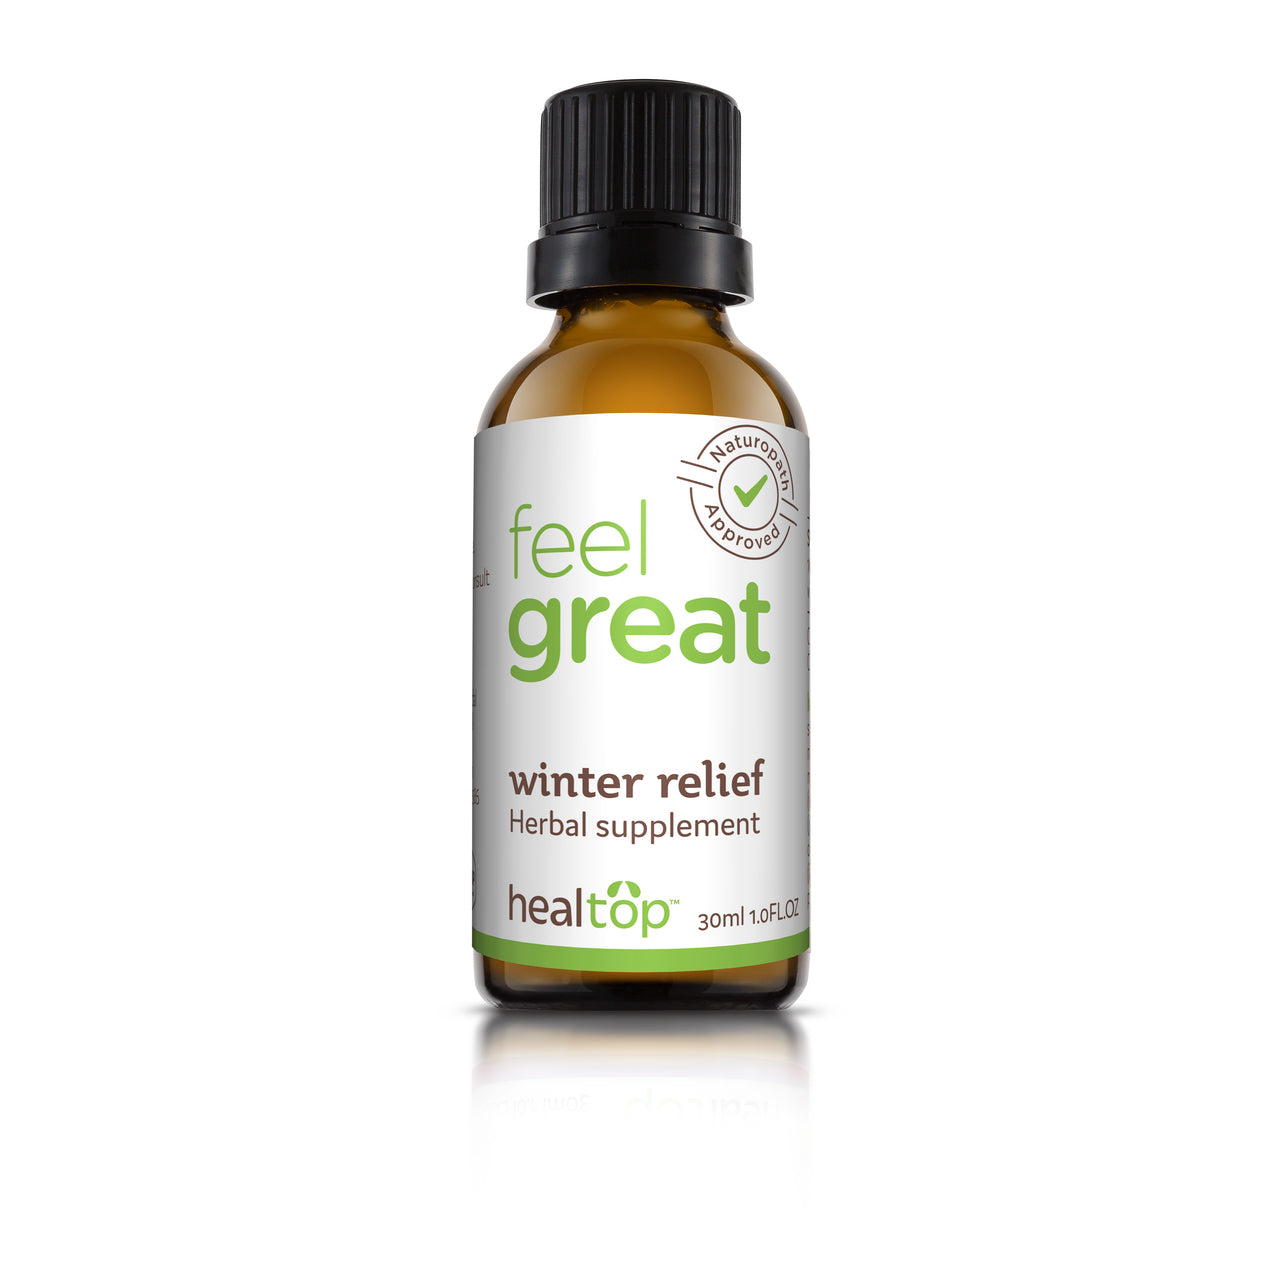 winter relief - natural supplement - Healtop